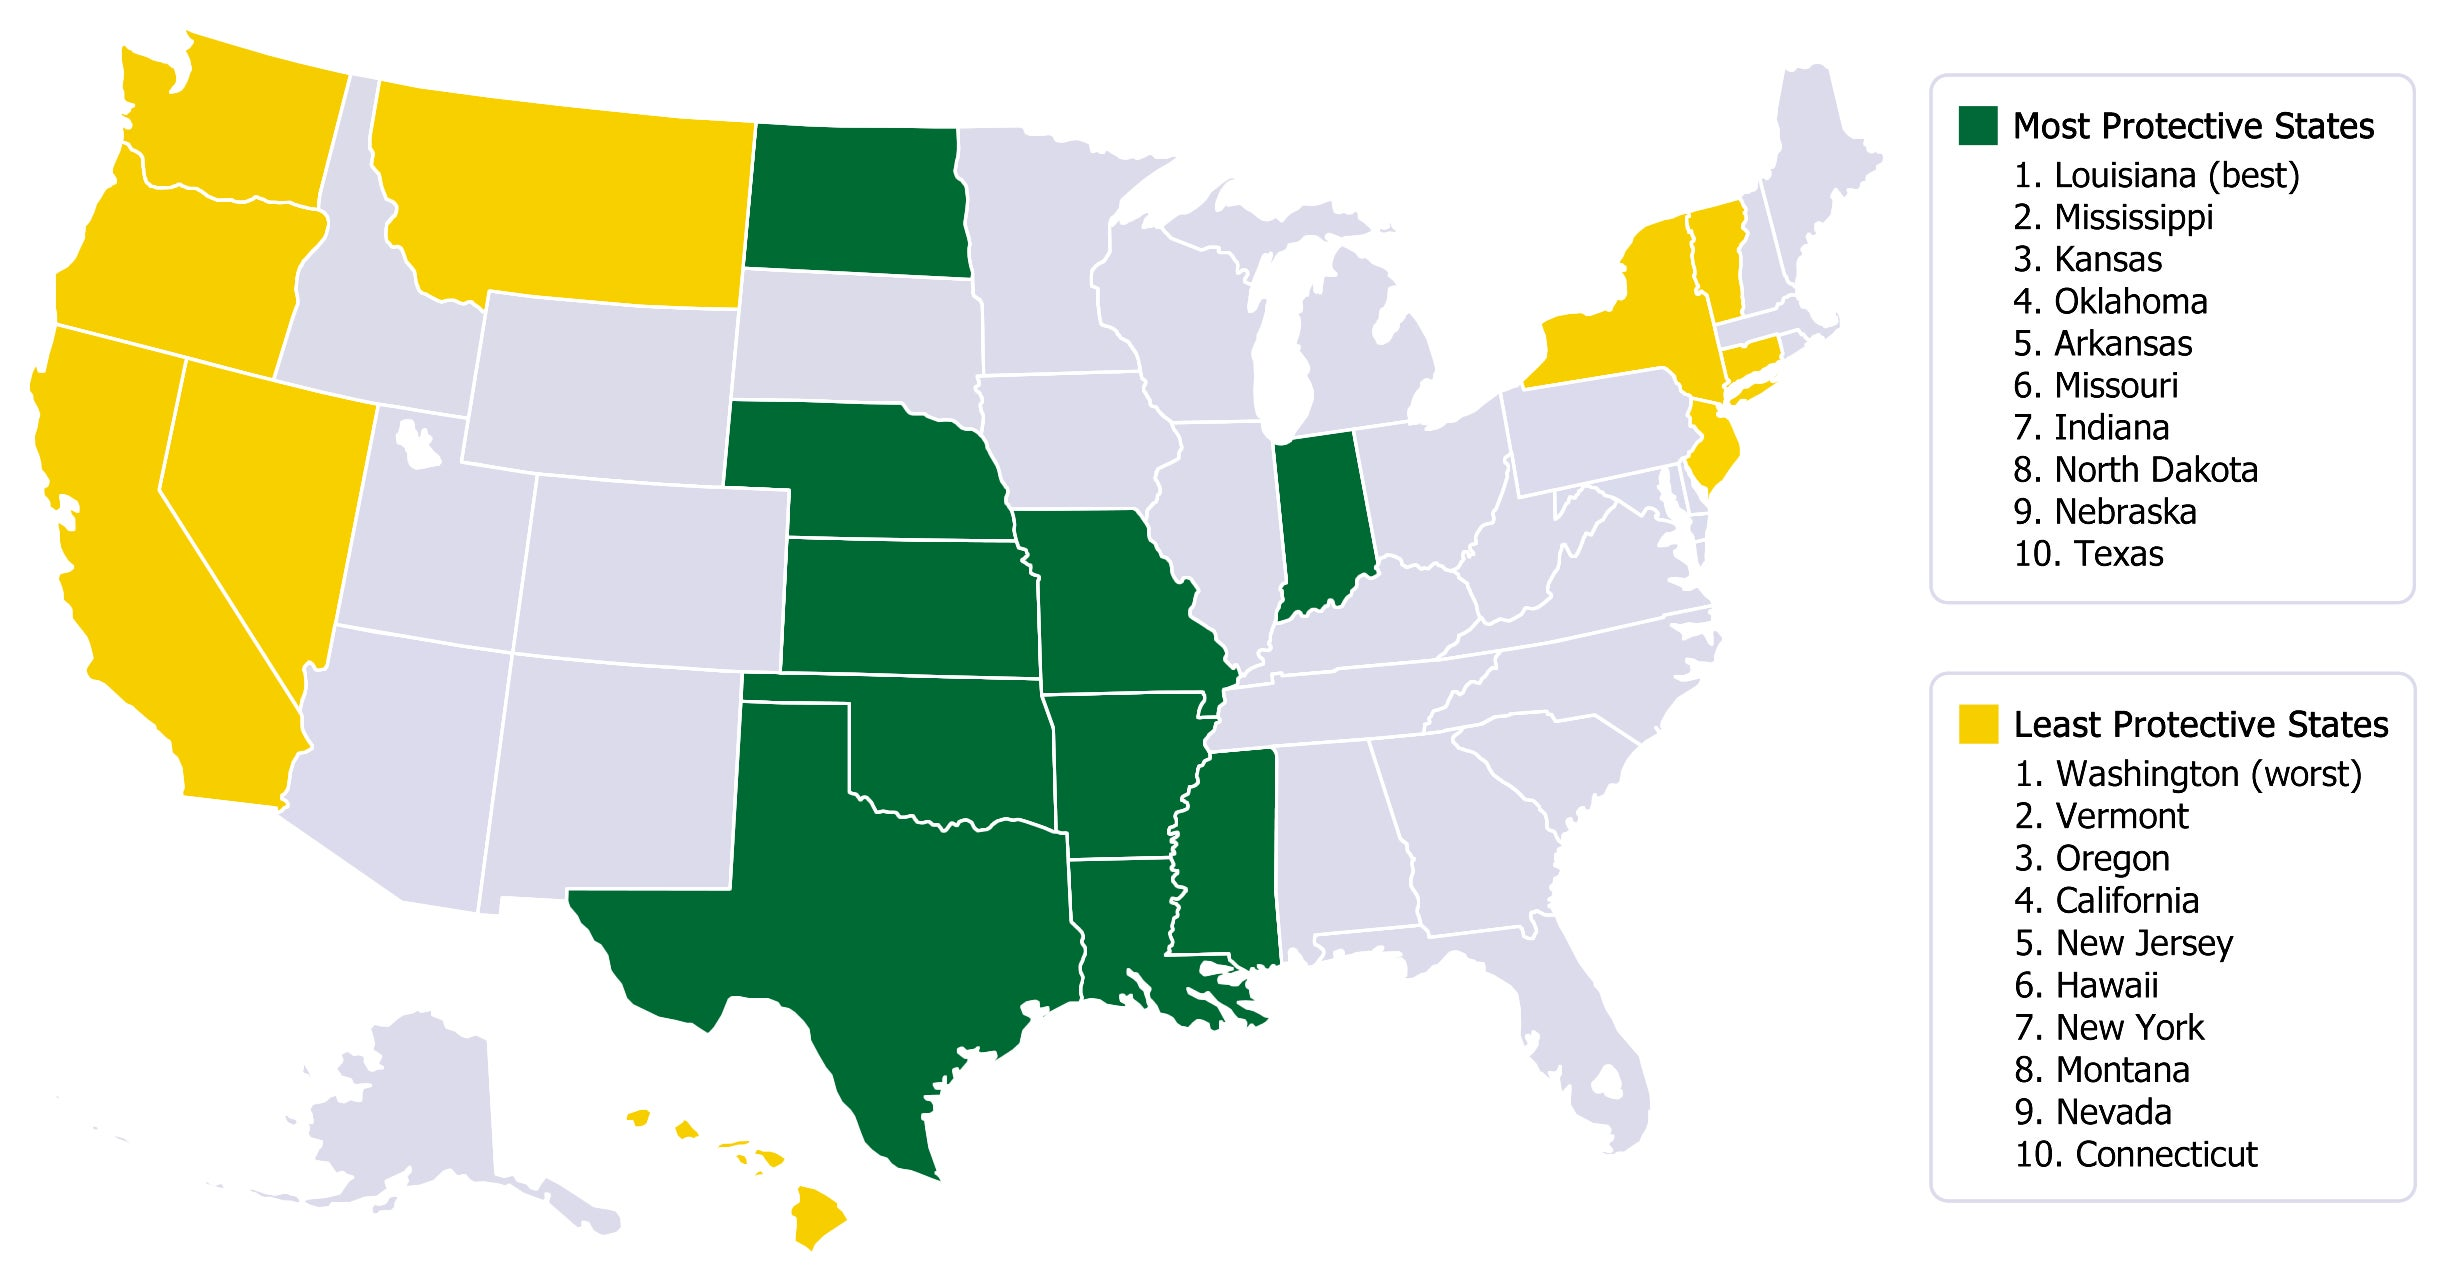 How ProLife Is Your State This Map Holds The Answer - Us abortion map